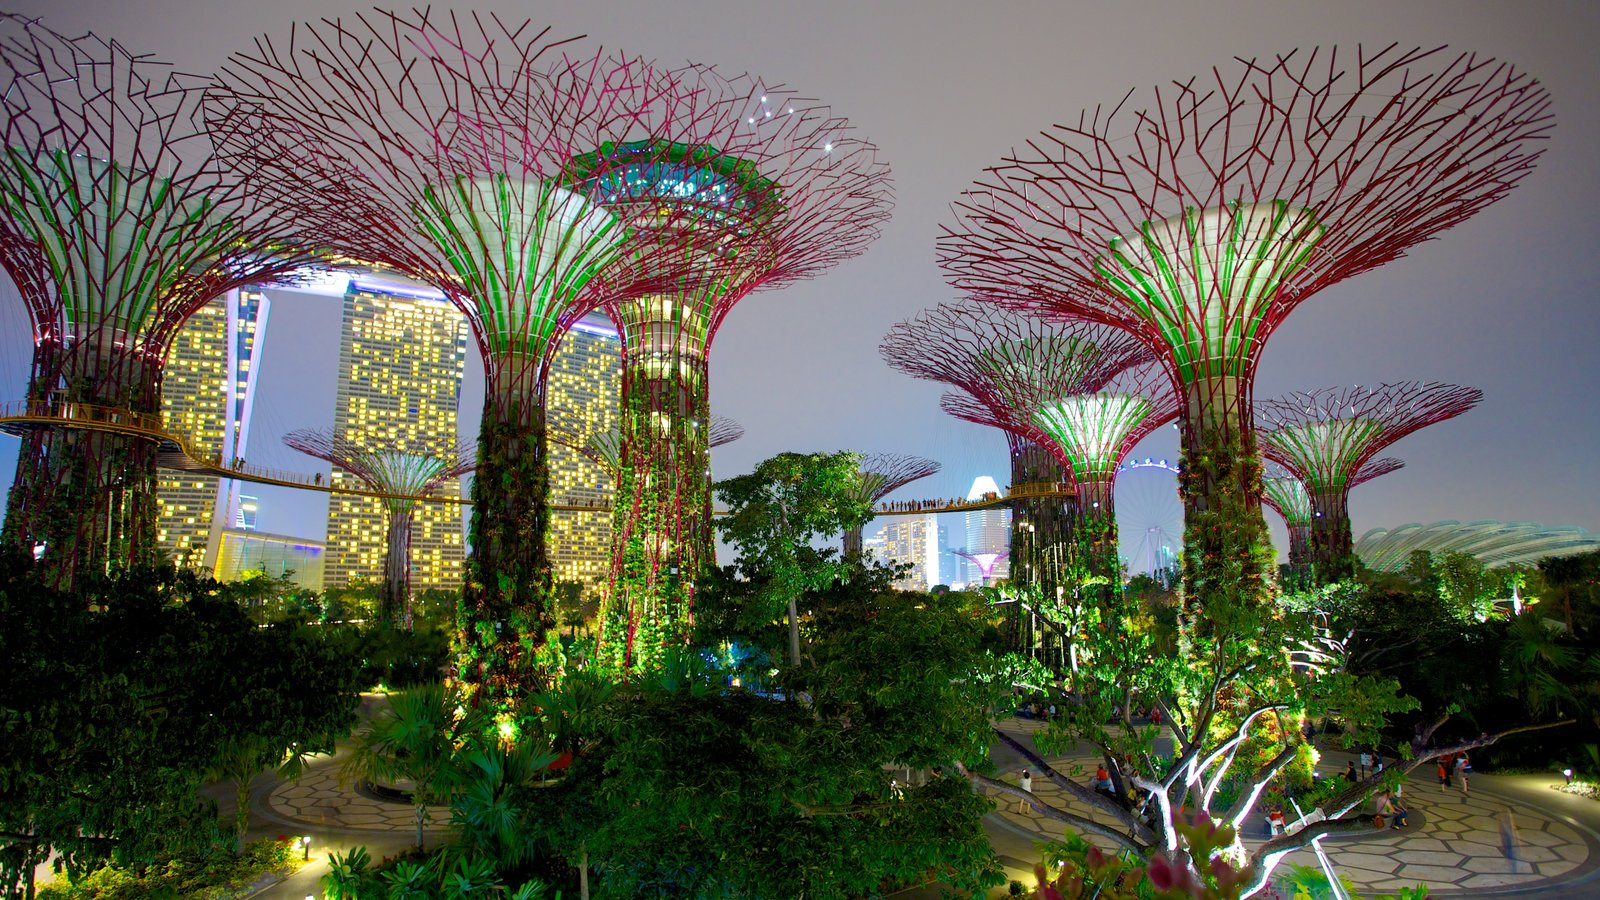 Sculpture Hd Wallpapers Gardens By The Bay Pictures View Photos Amp Images Of